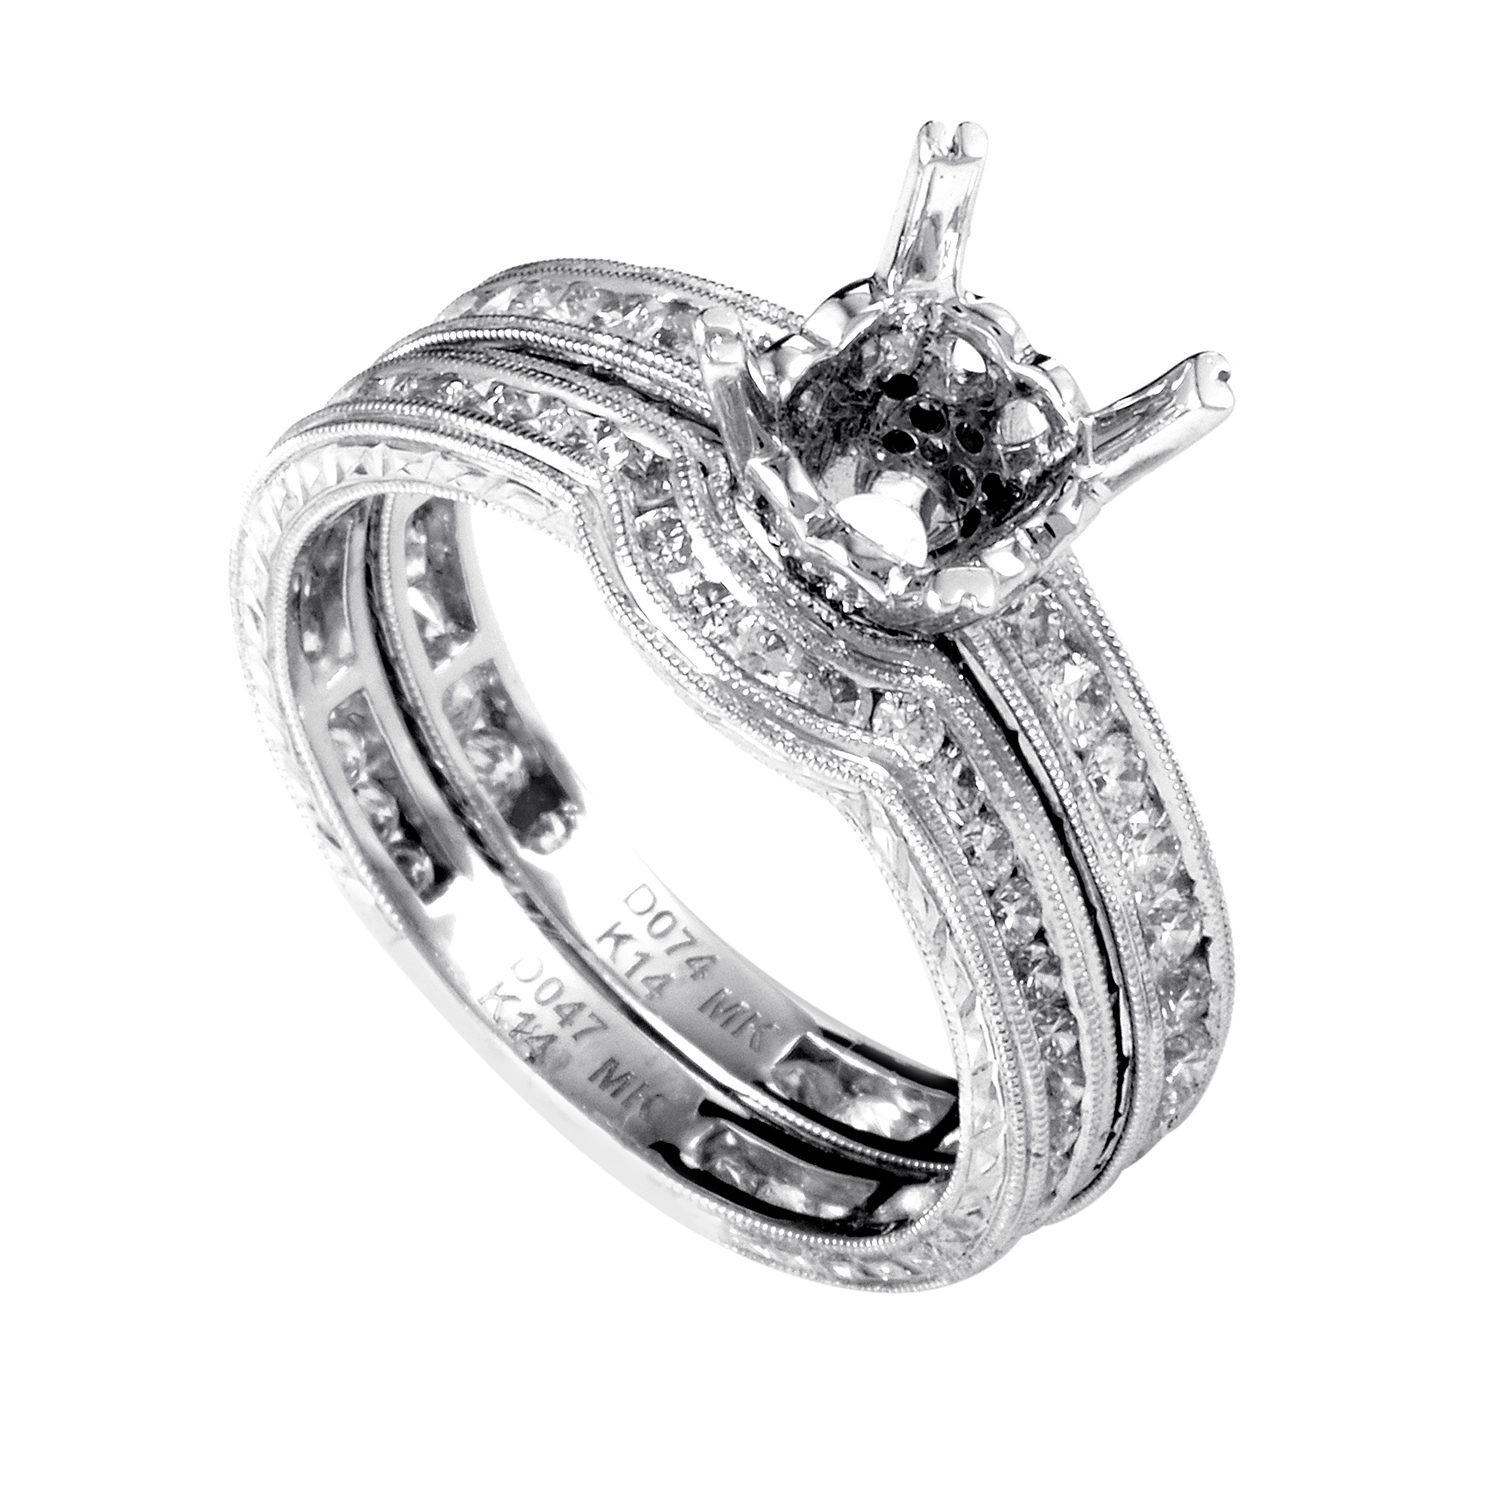 Women's 14K White Gold Diamond Bridal Mounting Set SM4-12465W